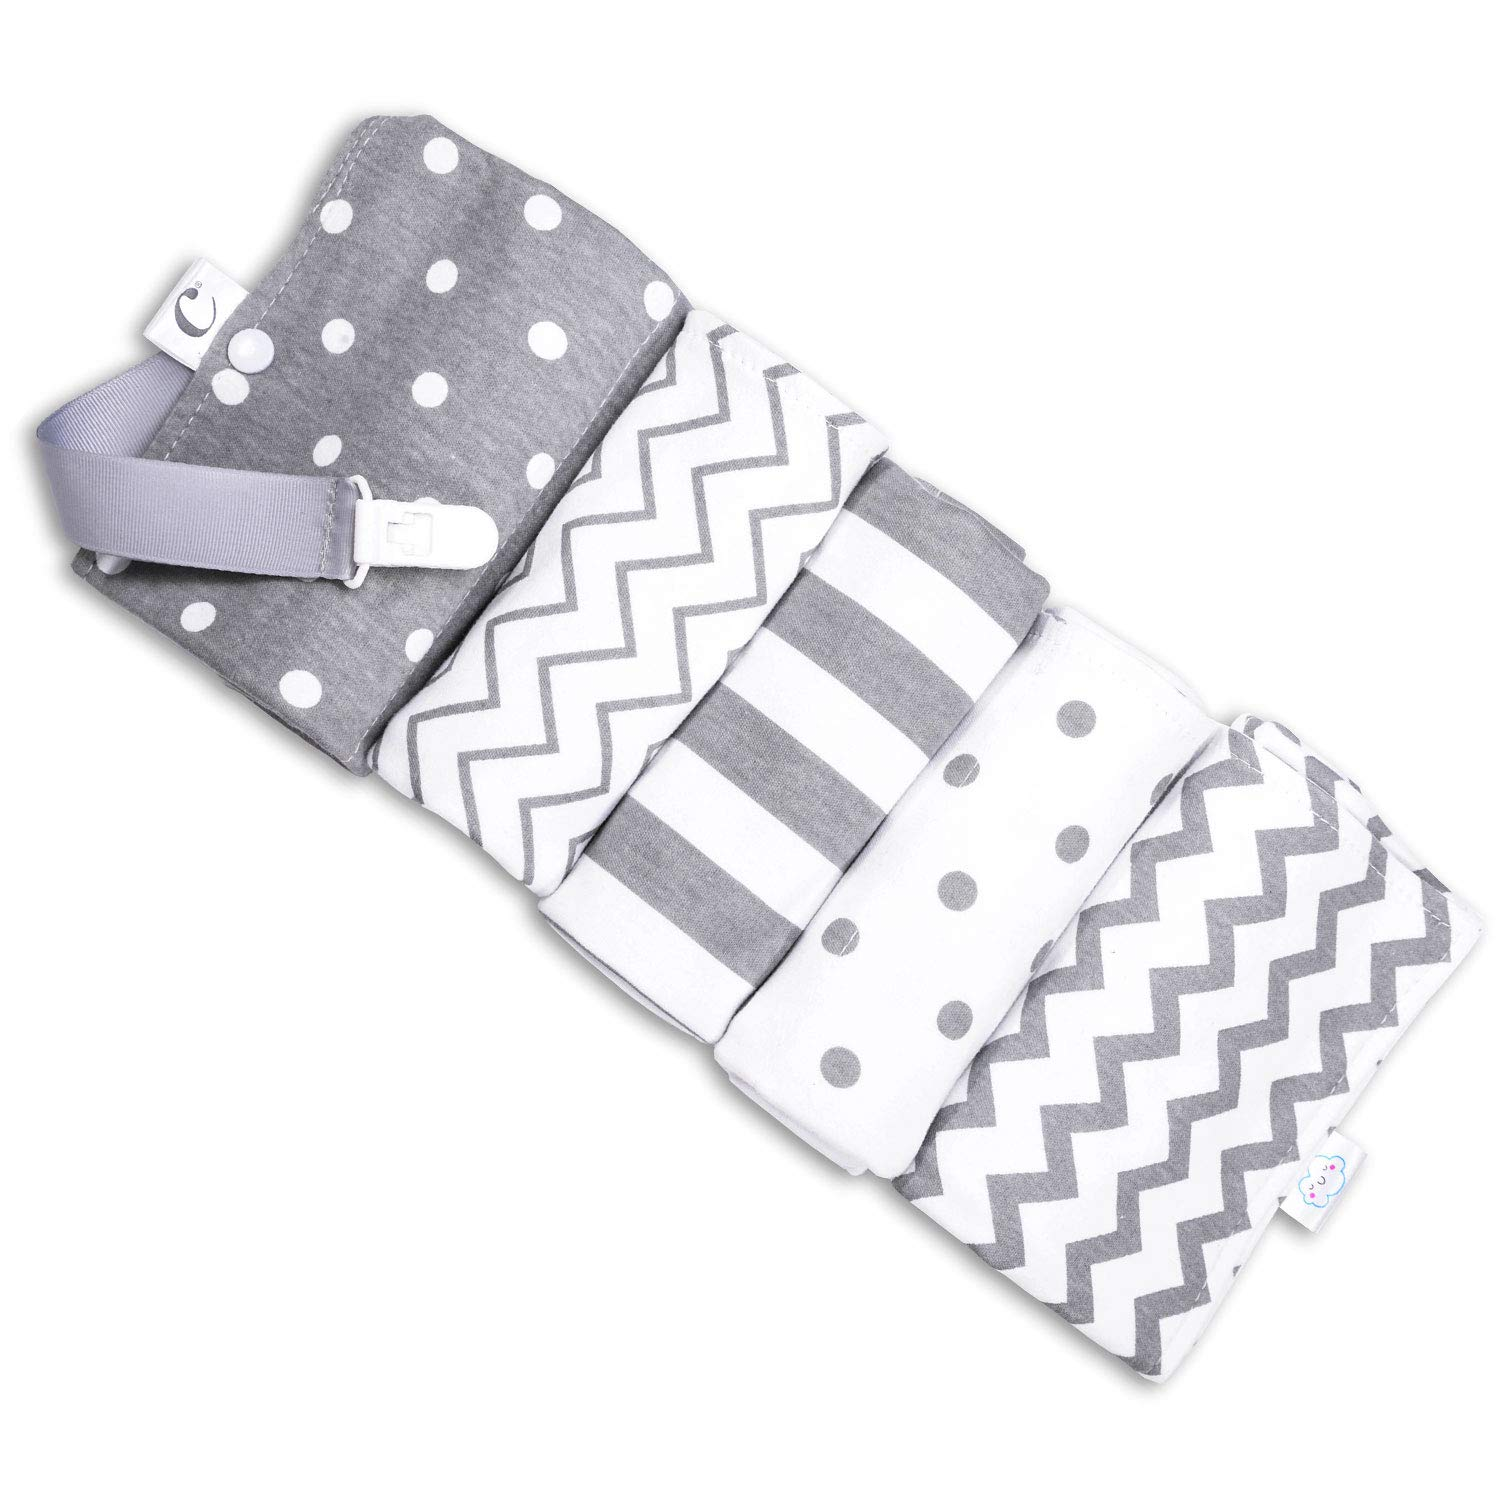 CuddleBug Baby Burp Cloths | Grey/White, Spots/Stripes, 16'' x 13'' 2 Ply, 5 Pack, 100% Organic Cotton Baby Burp Cloth | Baby Boy and Girl | Good Pair for Baby Clothes, Baby Onesies | Daily Essentials